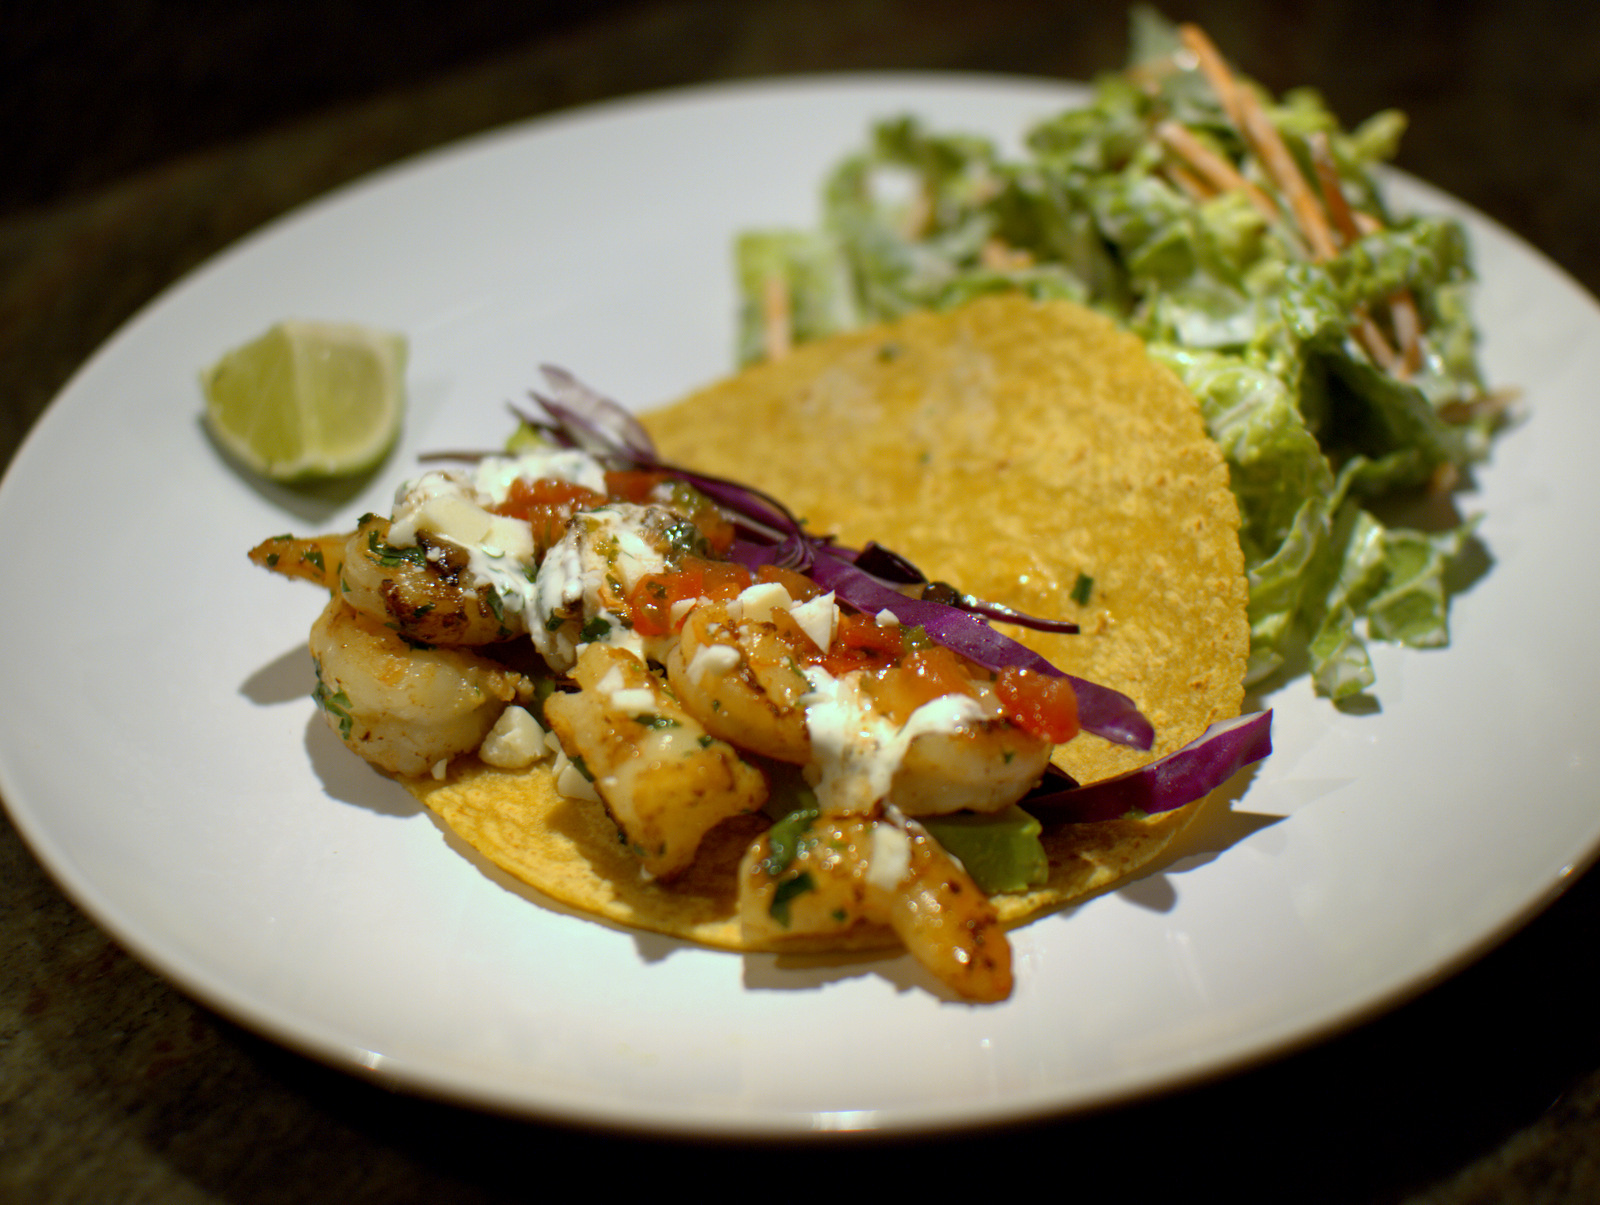 shrimp taco and napa cabbage salad with buttermilk dressing